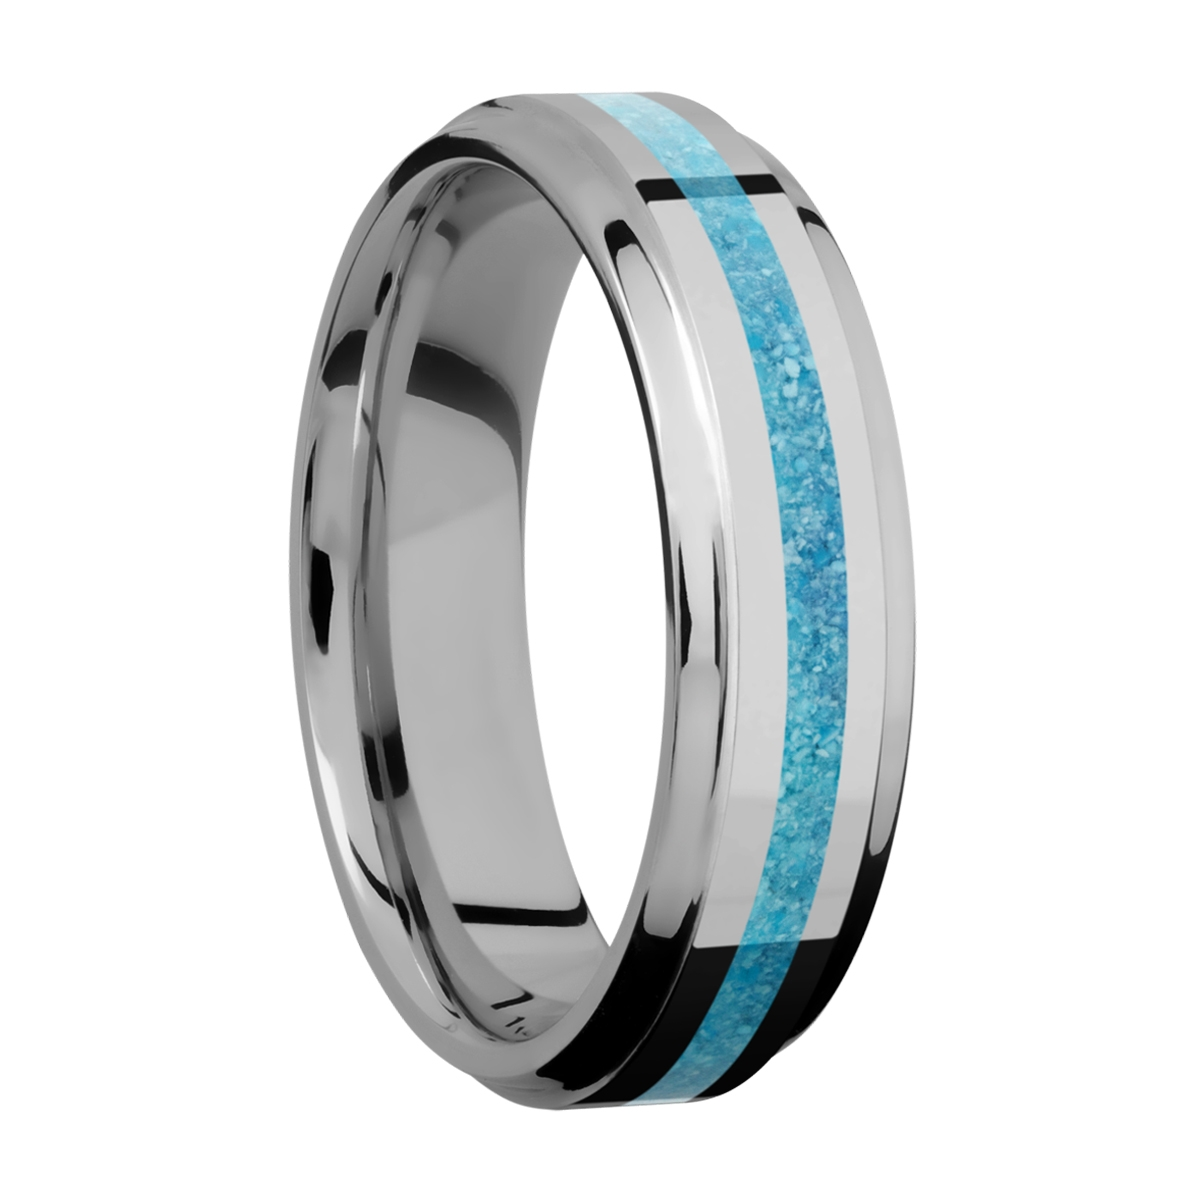 Lashbrook 6B12(S)/MOSAIC Titanium Wedding Ring or Band Alternative View 1